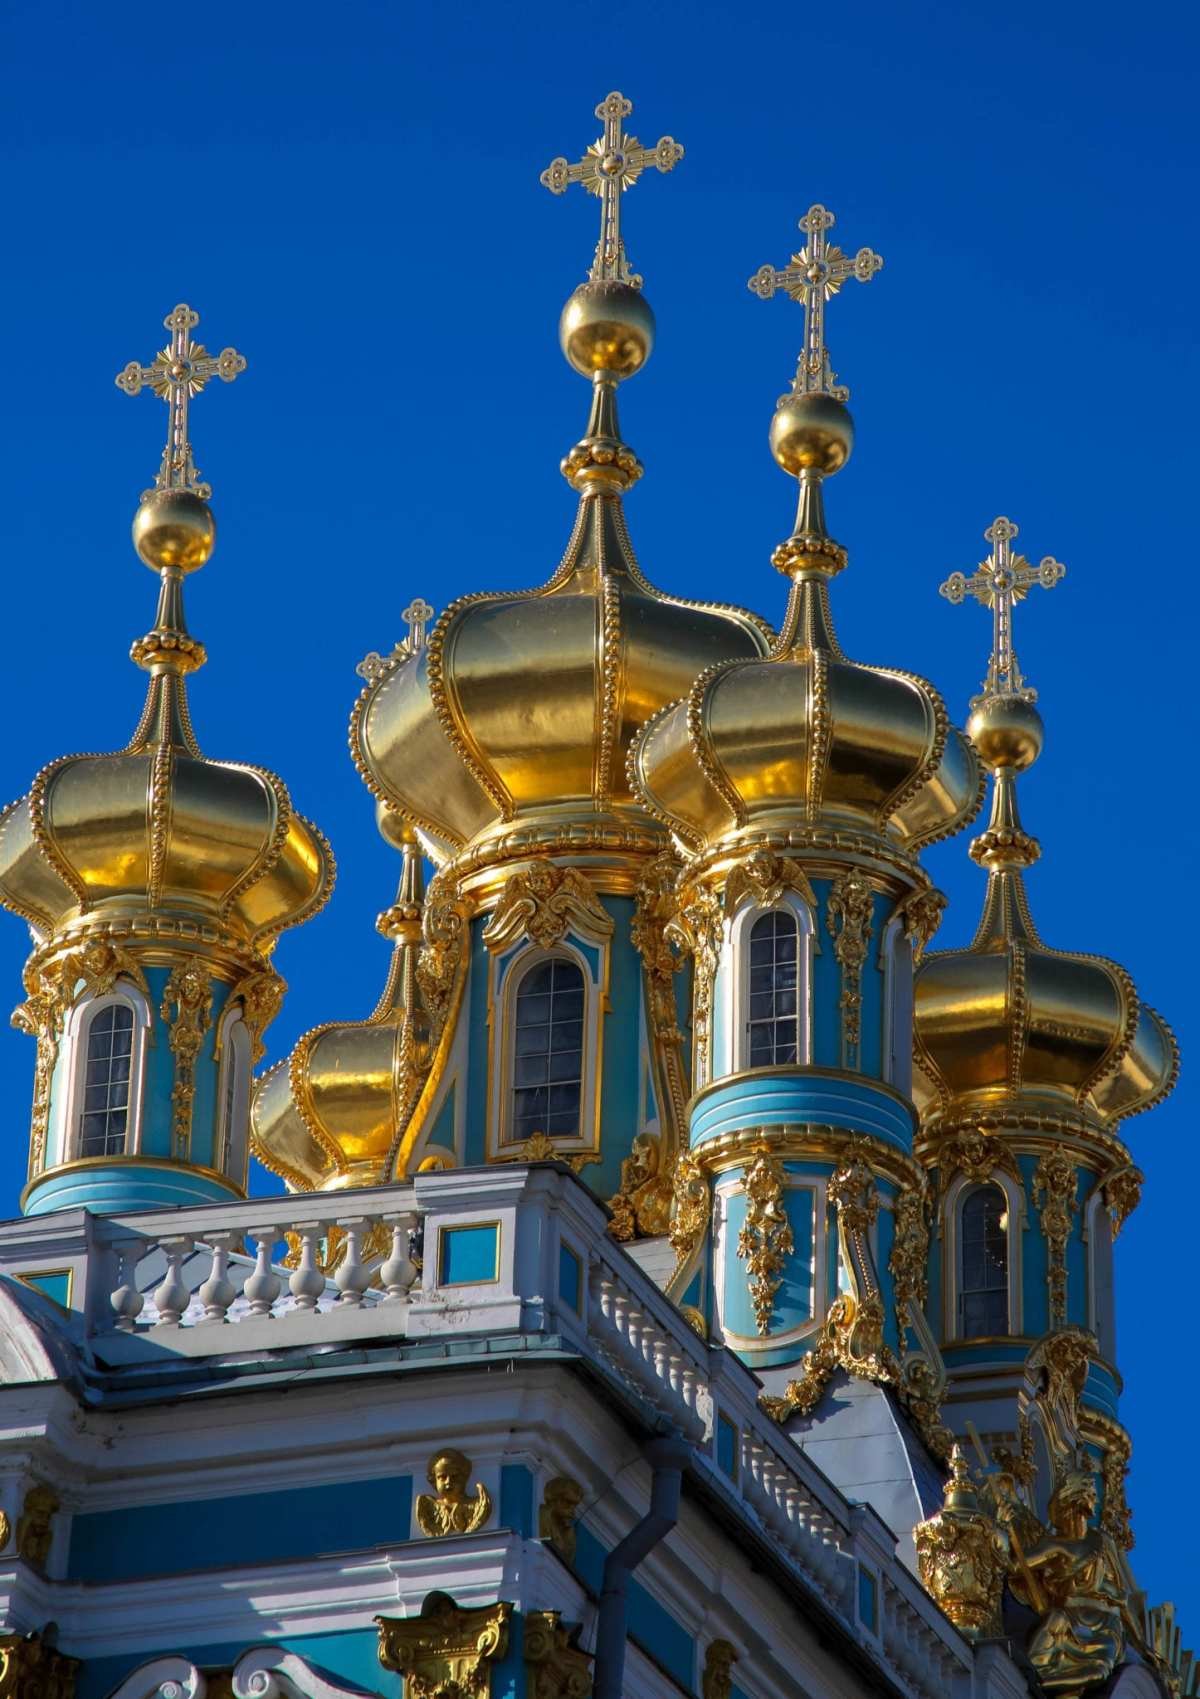 Golden Domes of the imperial chapel at the Catherine Palace at Tsarskoye Selo, the summer residence of the Russian Tsars